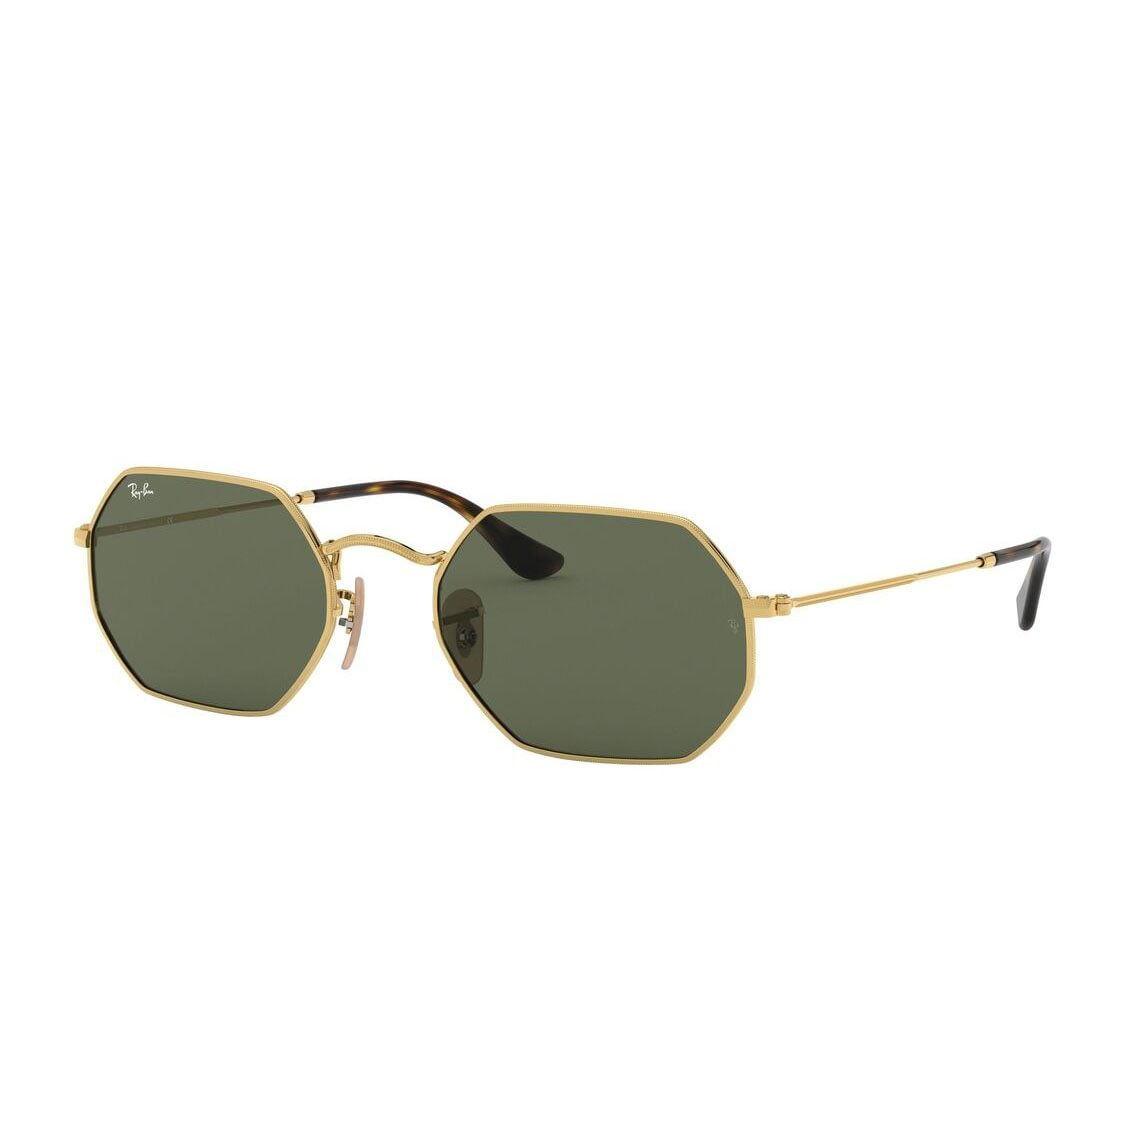 Ray-Ban Octagonal Classic RB3556N 001 52